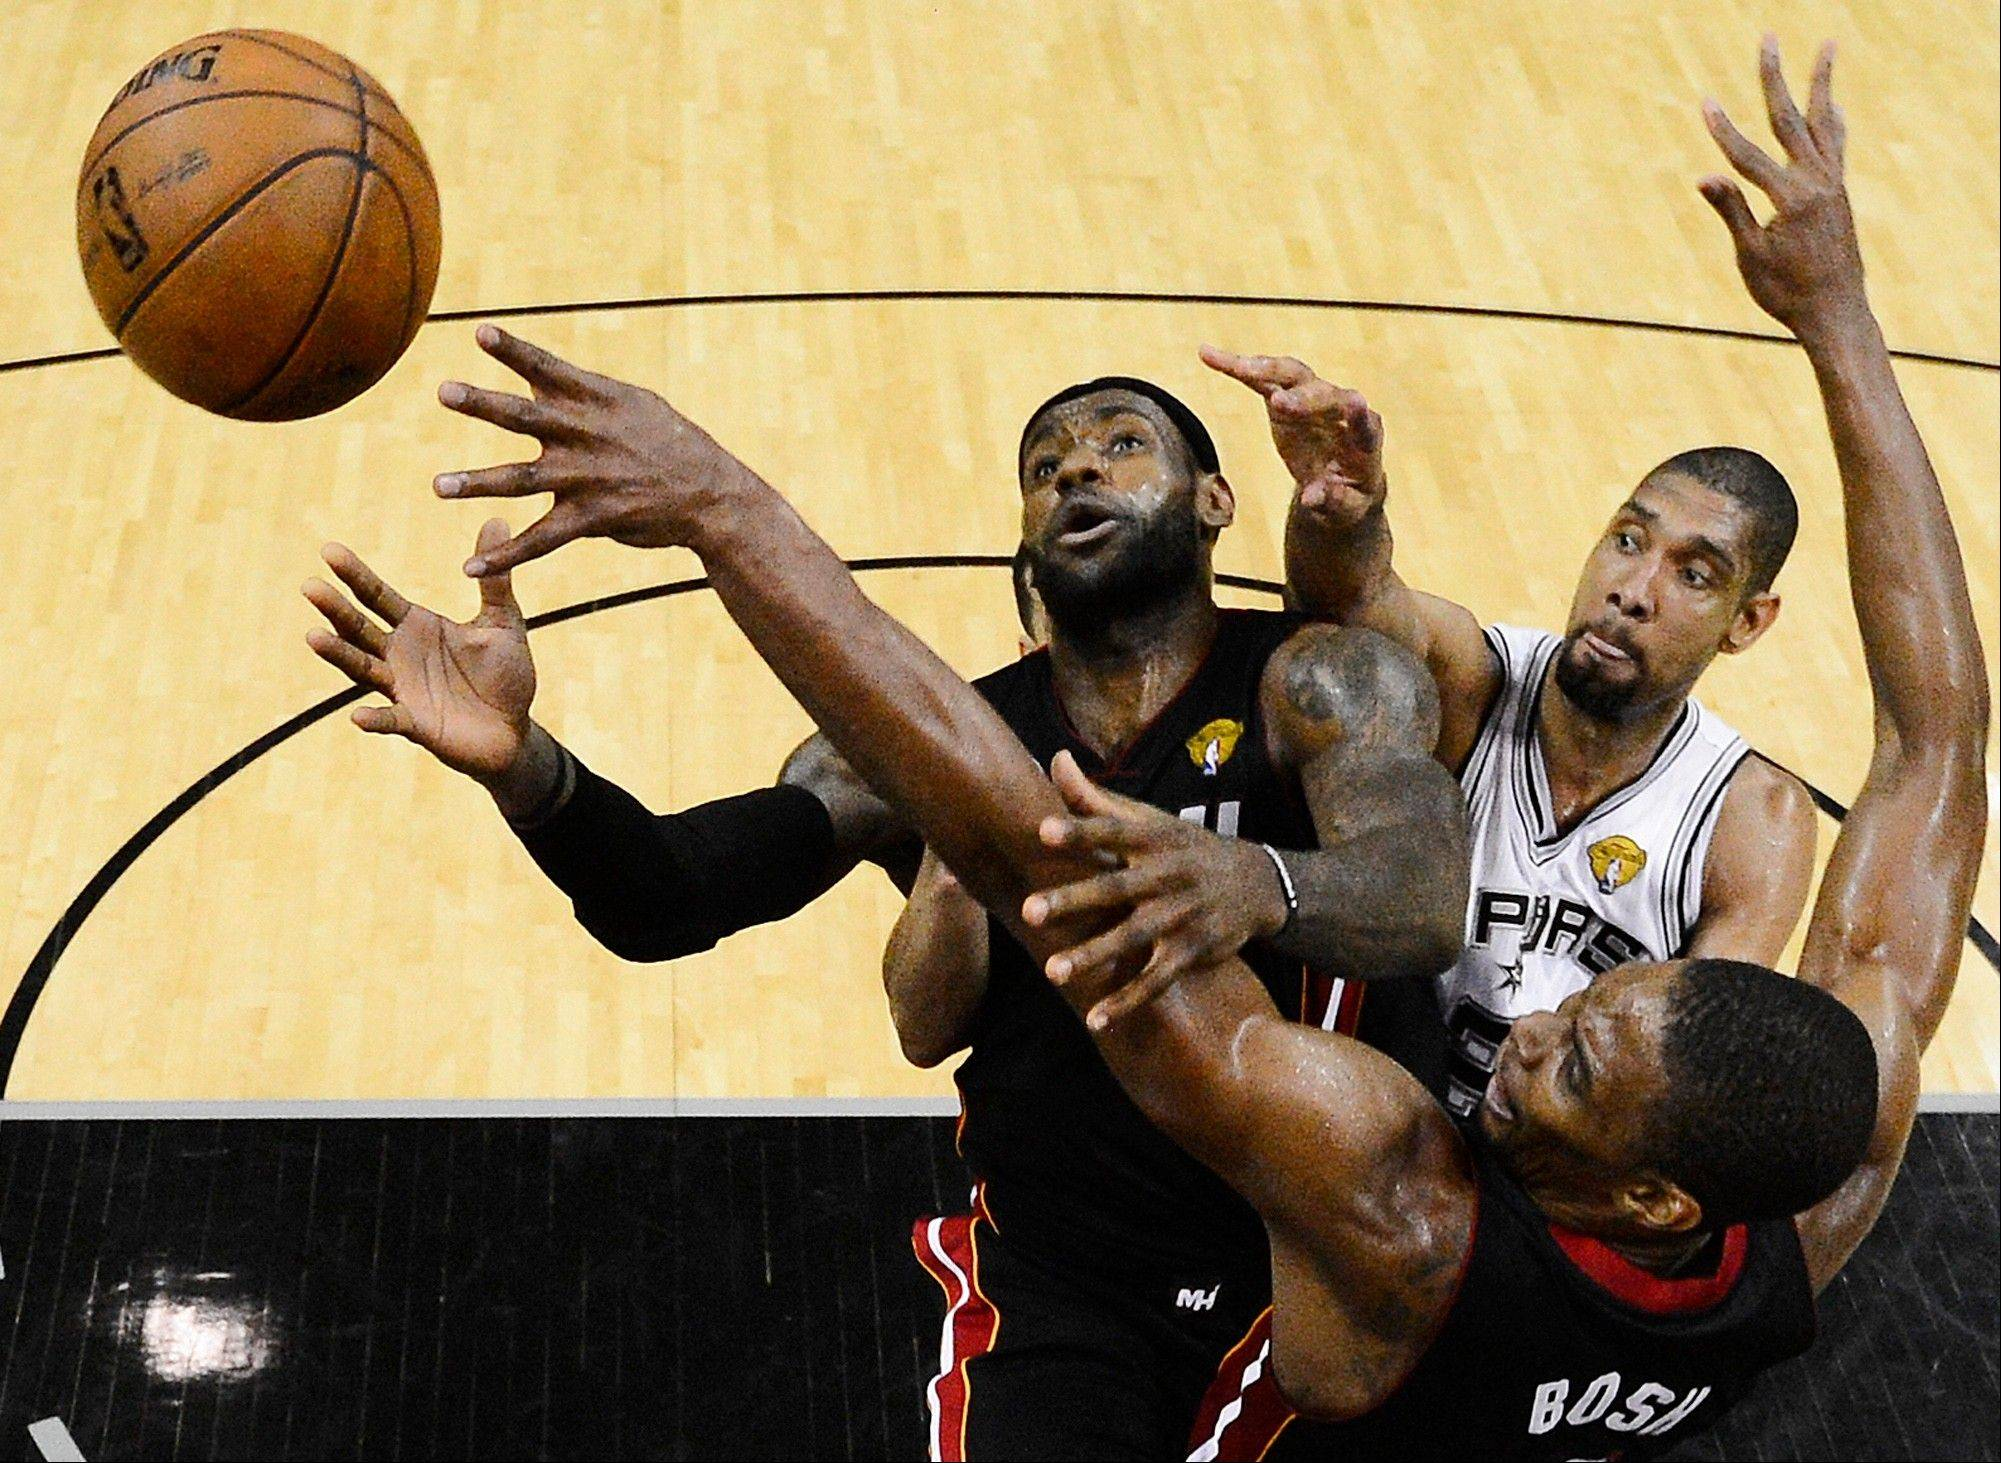 Miami Heat forward LeBron James (6), Chris Bosh (1) and the San Antonio Spurs� Tim Duncan go after a loose ball Sunday during the second half at Game 5 of the NBA Finals in San Antonio. The Spurs won 114-104.